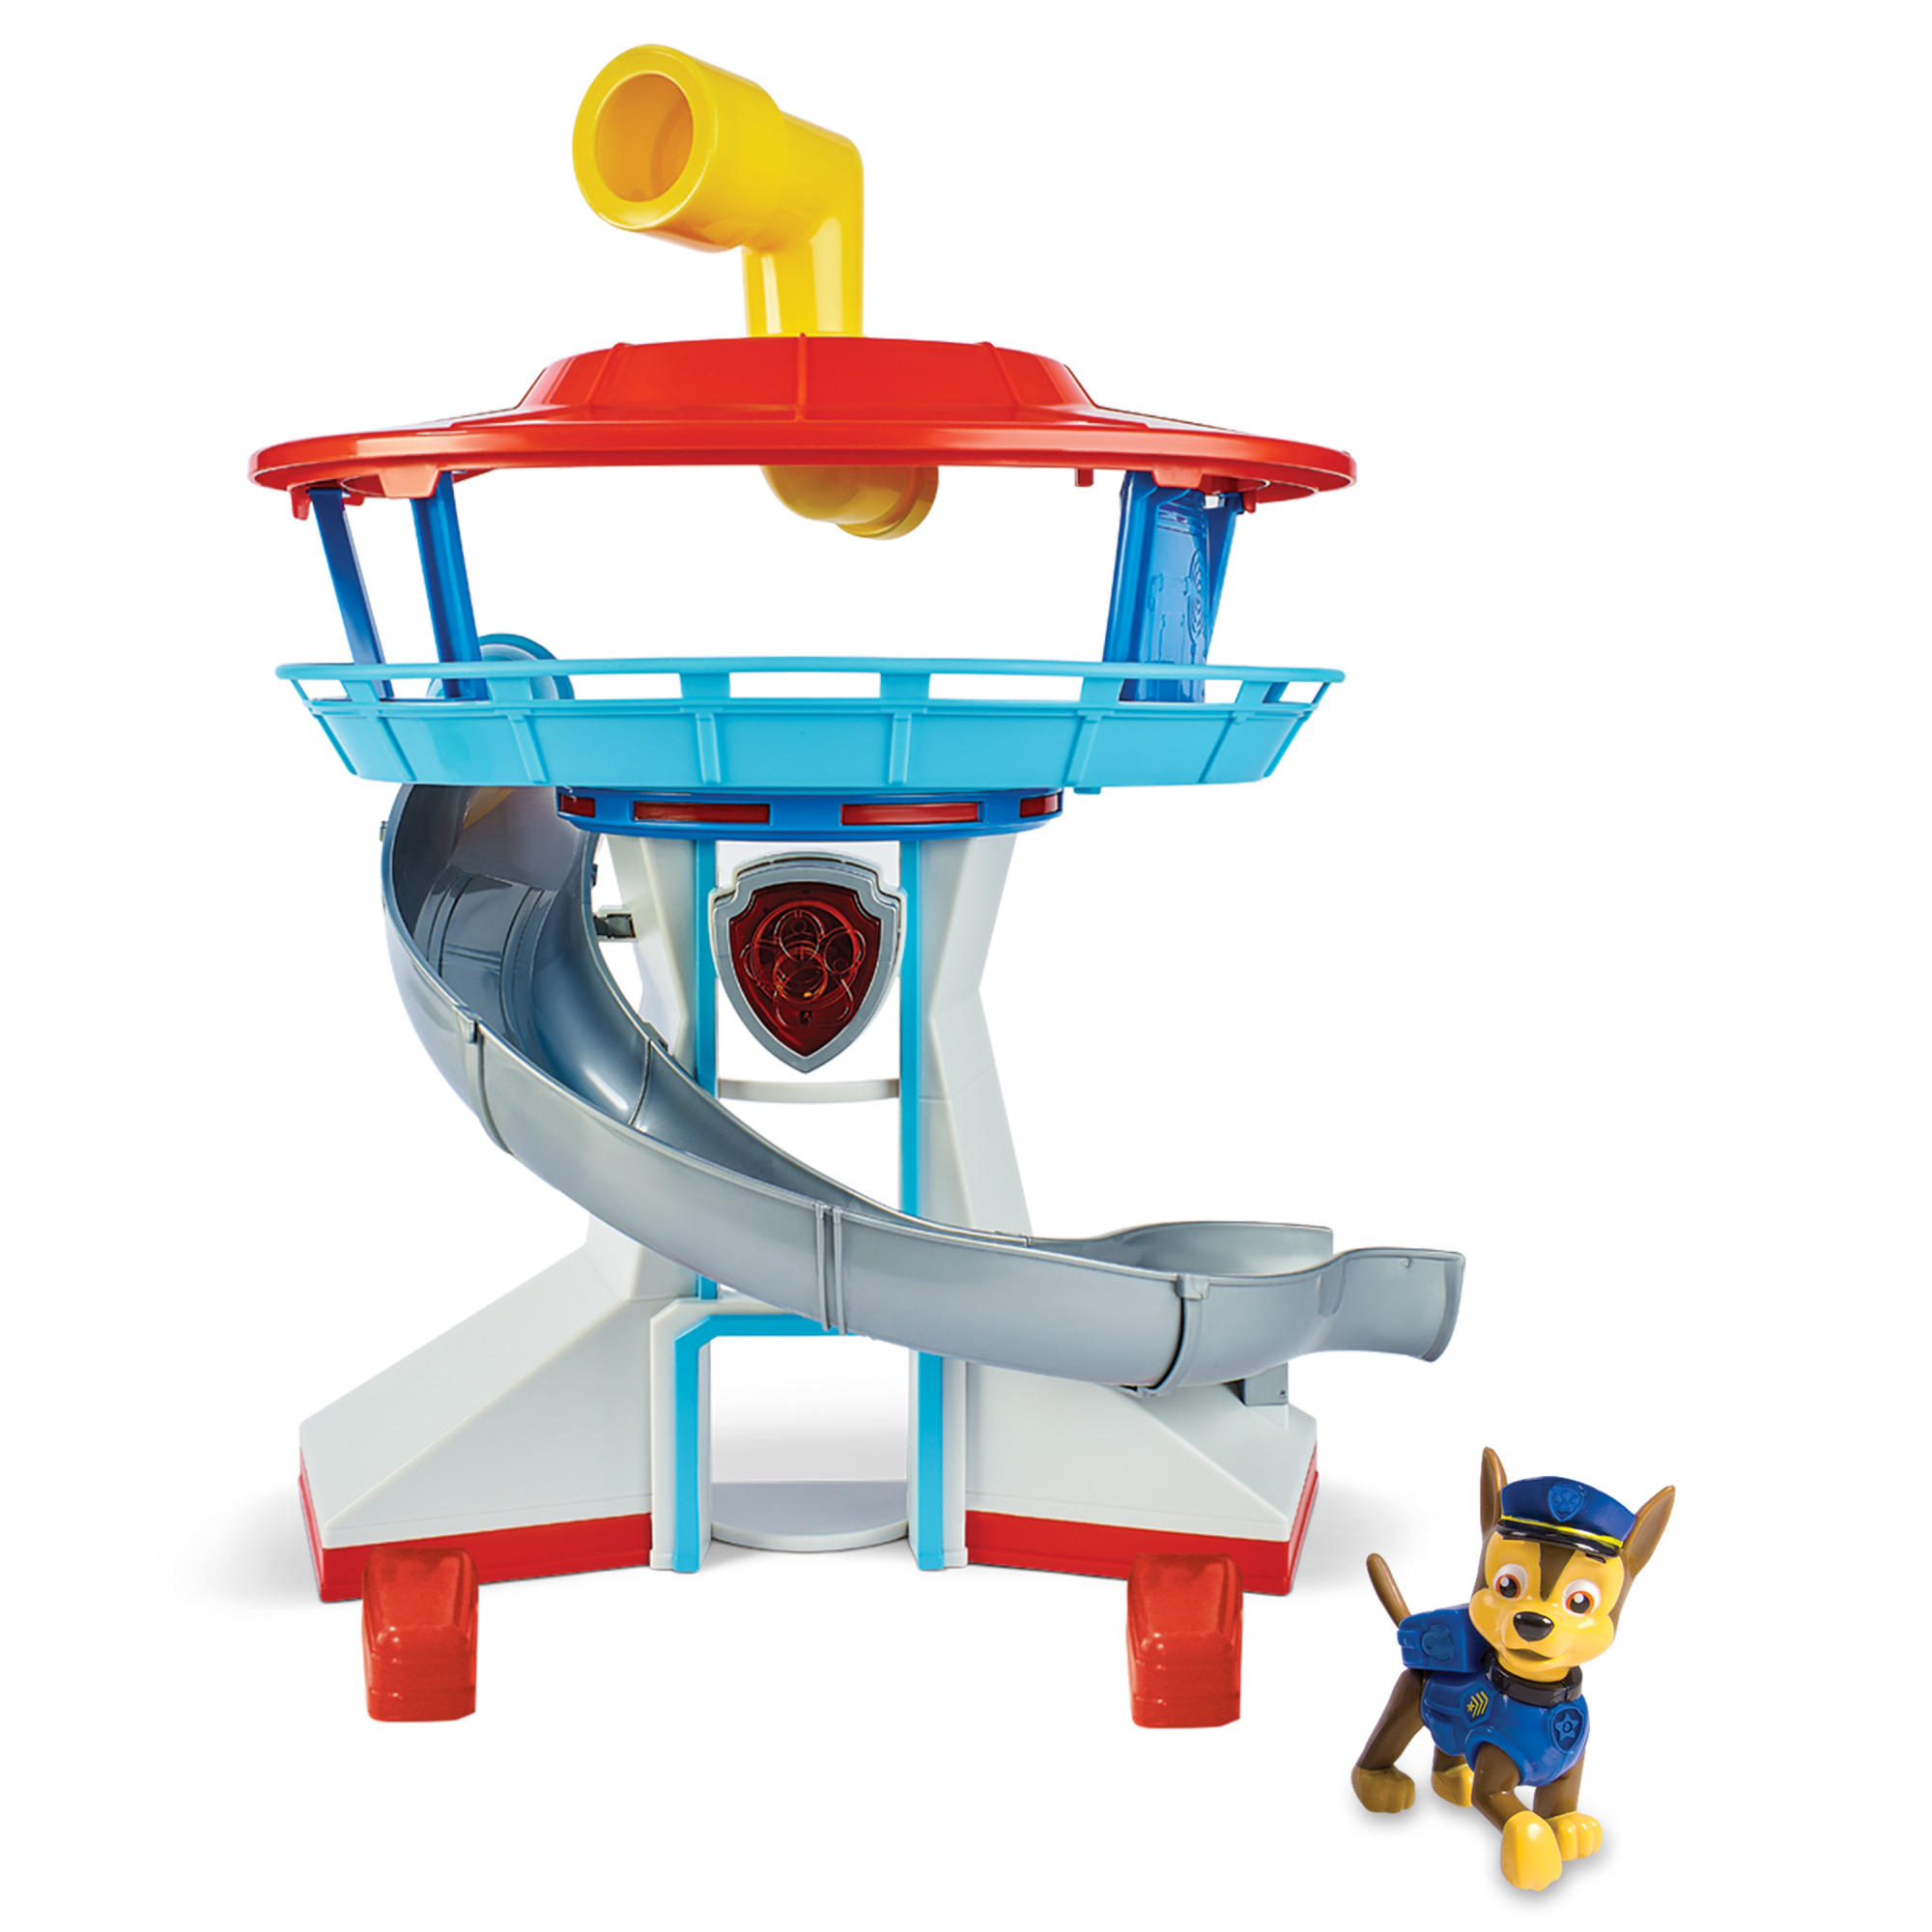 SM120167140000Paw Patrol The Lookout (1)